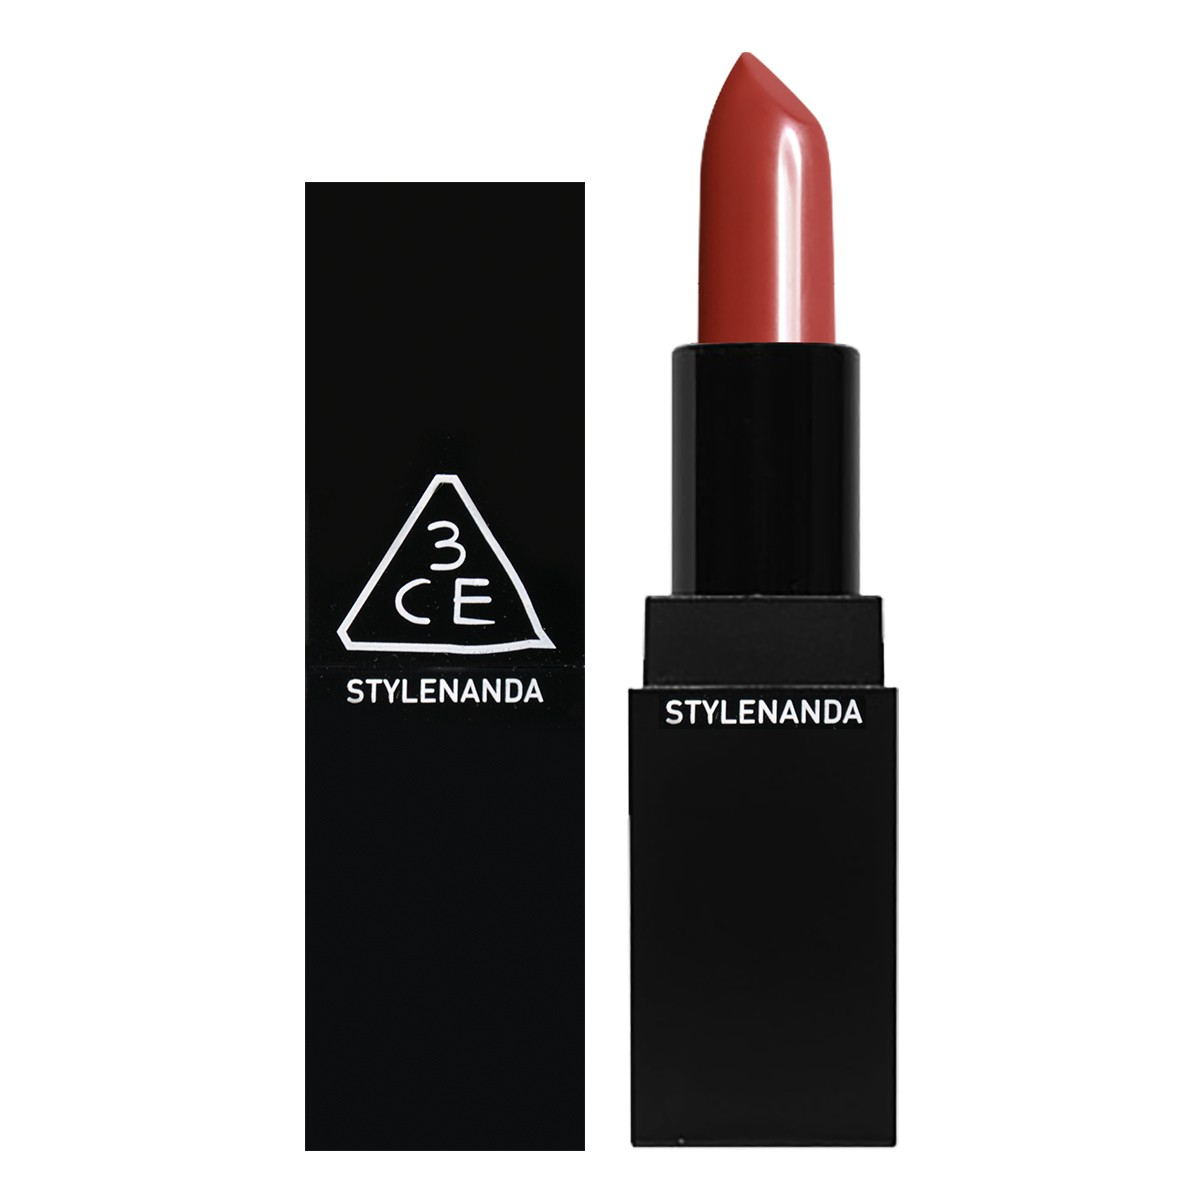 3CE Matte Lip Color #909 Smoked Rose 3.5g